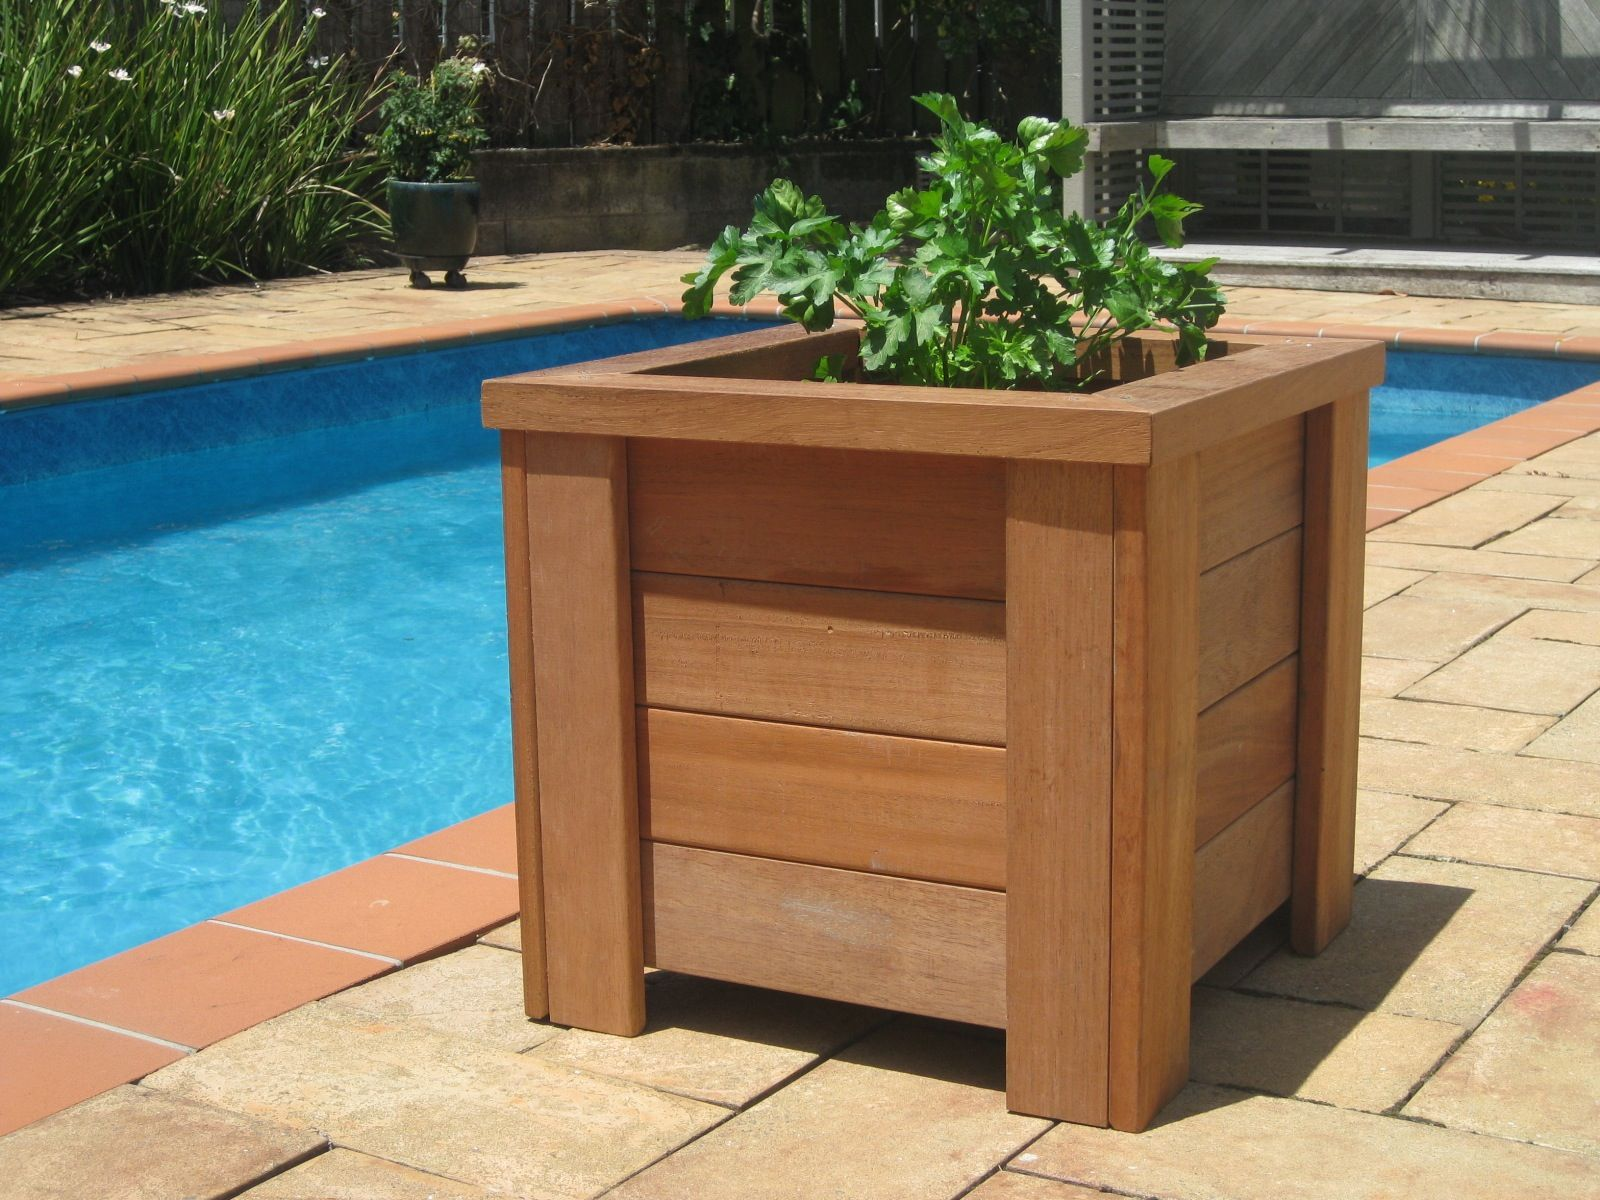 planters boxes google search planter boxes pinterest planters wooden planters and. Black Bedroom Furniture Sets. Home Design Ideas